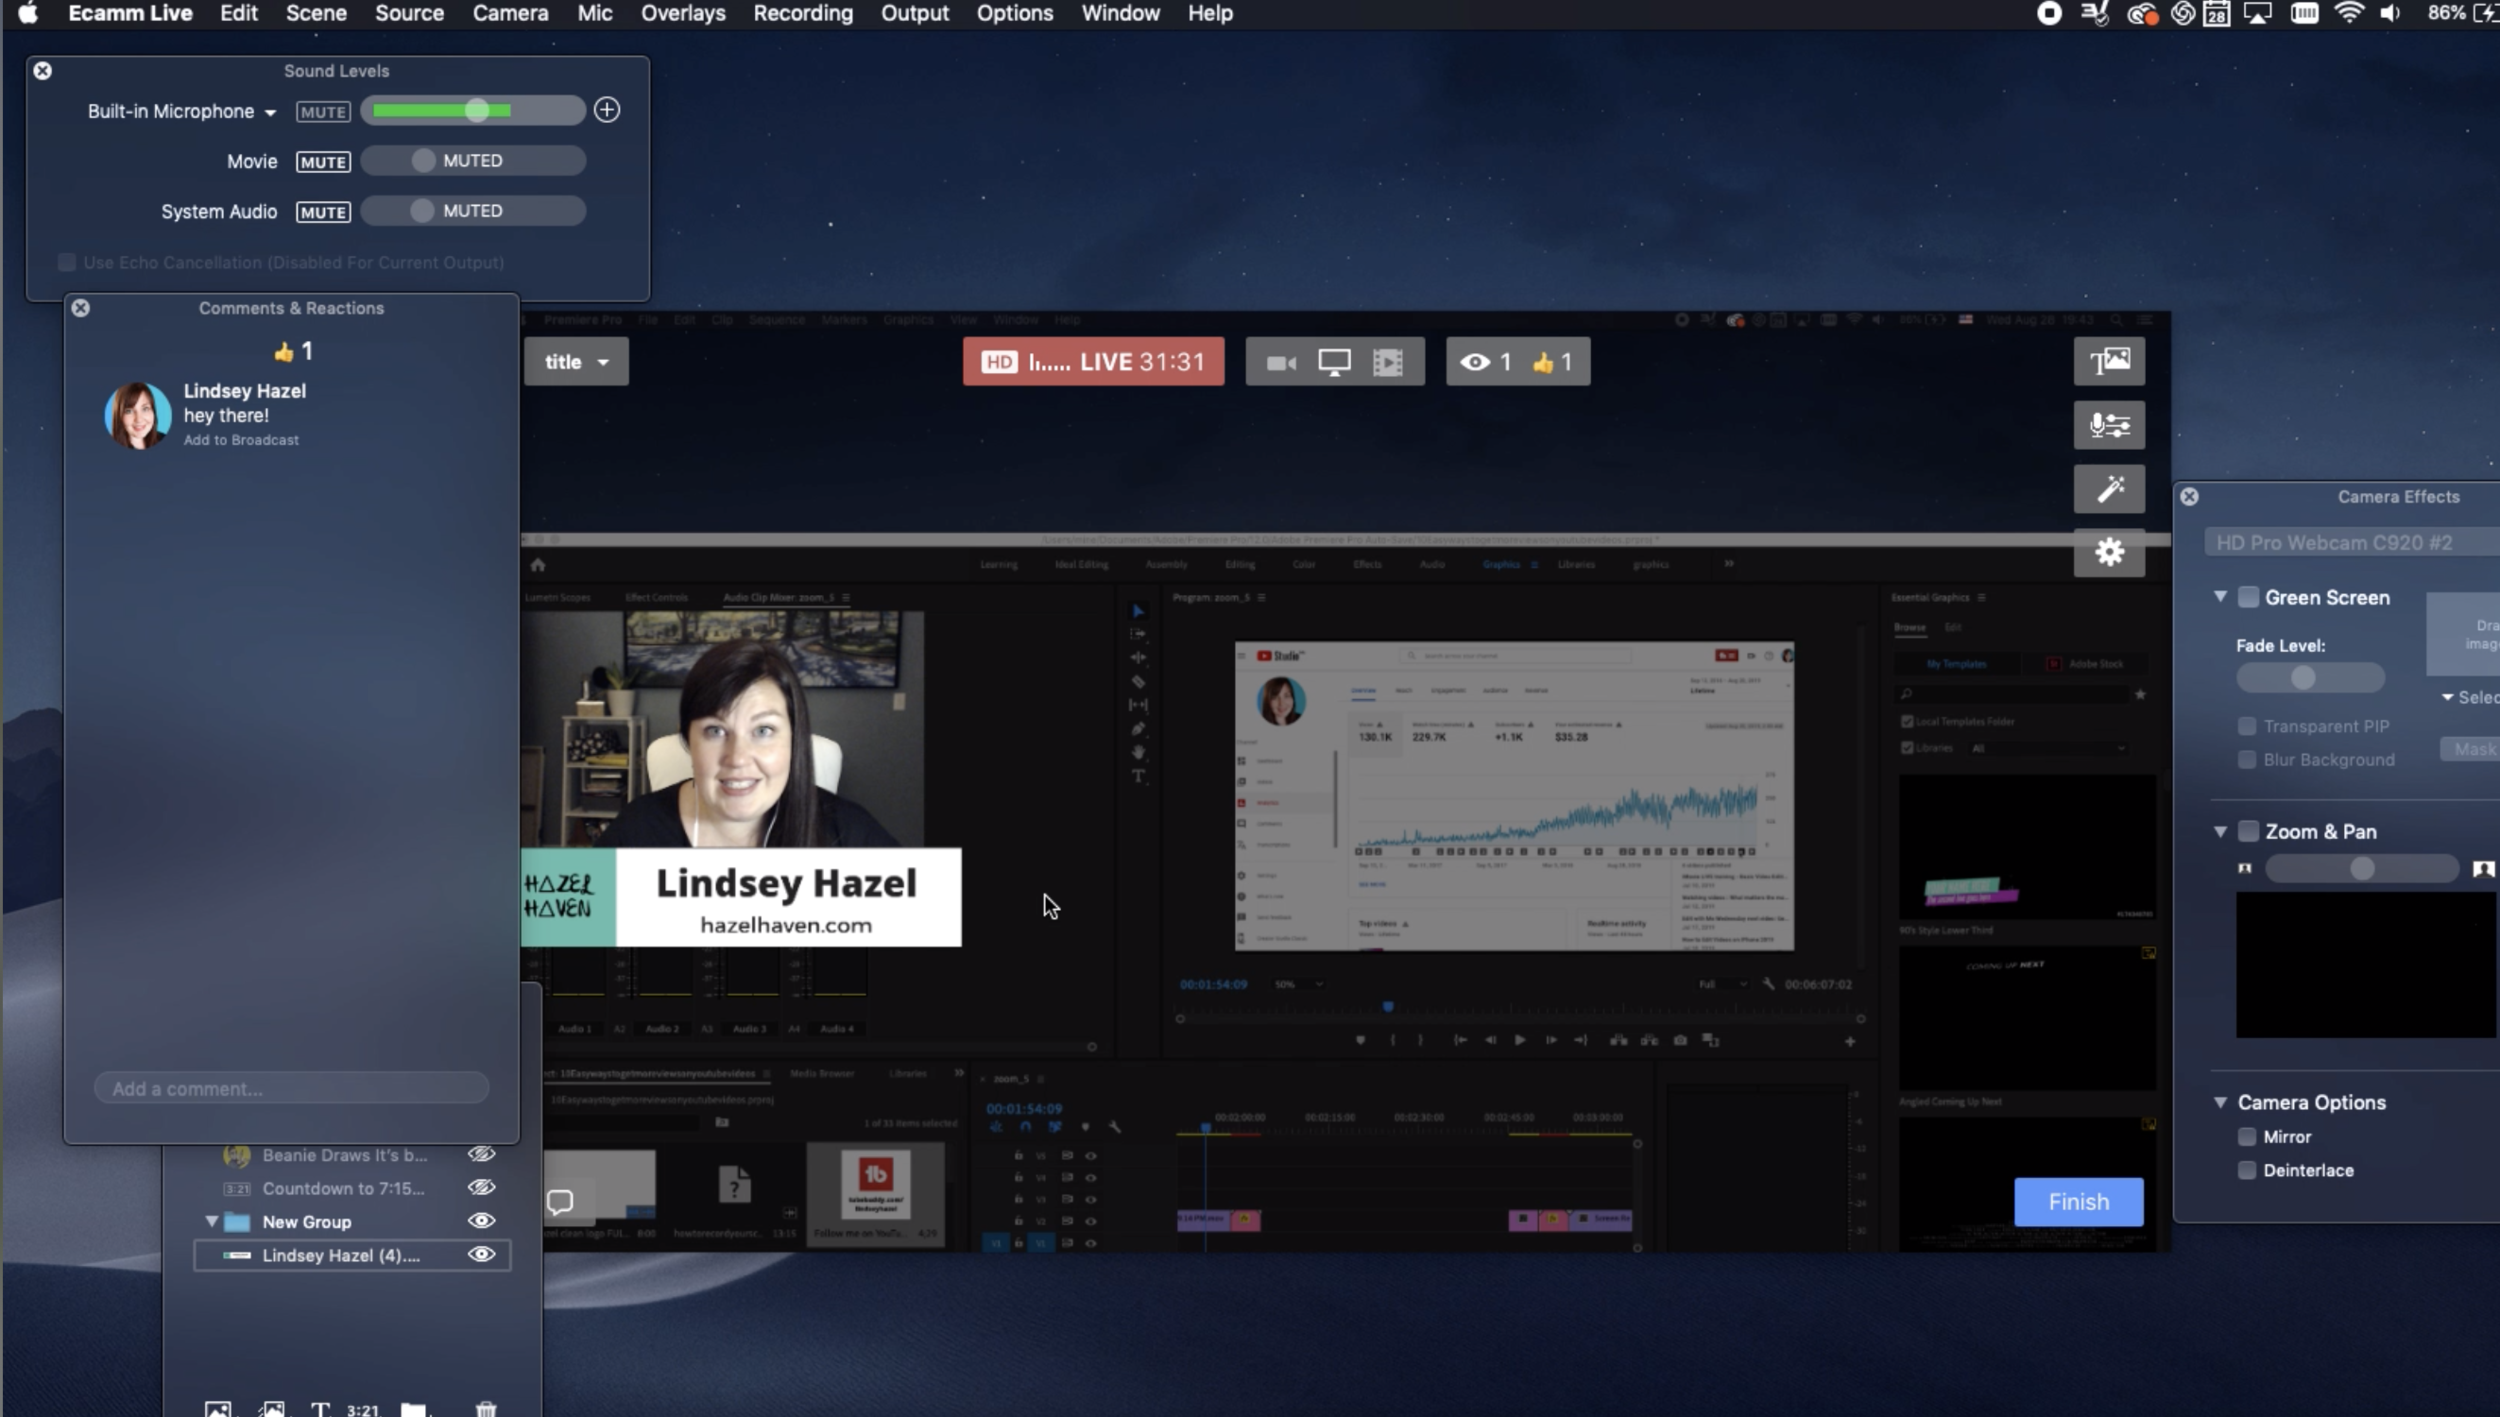 Ecamm Live best software for livestreaming on a Mac